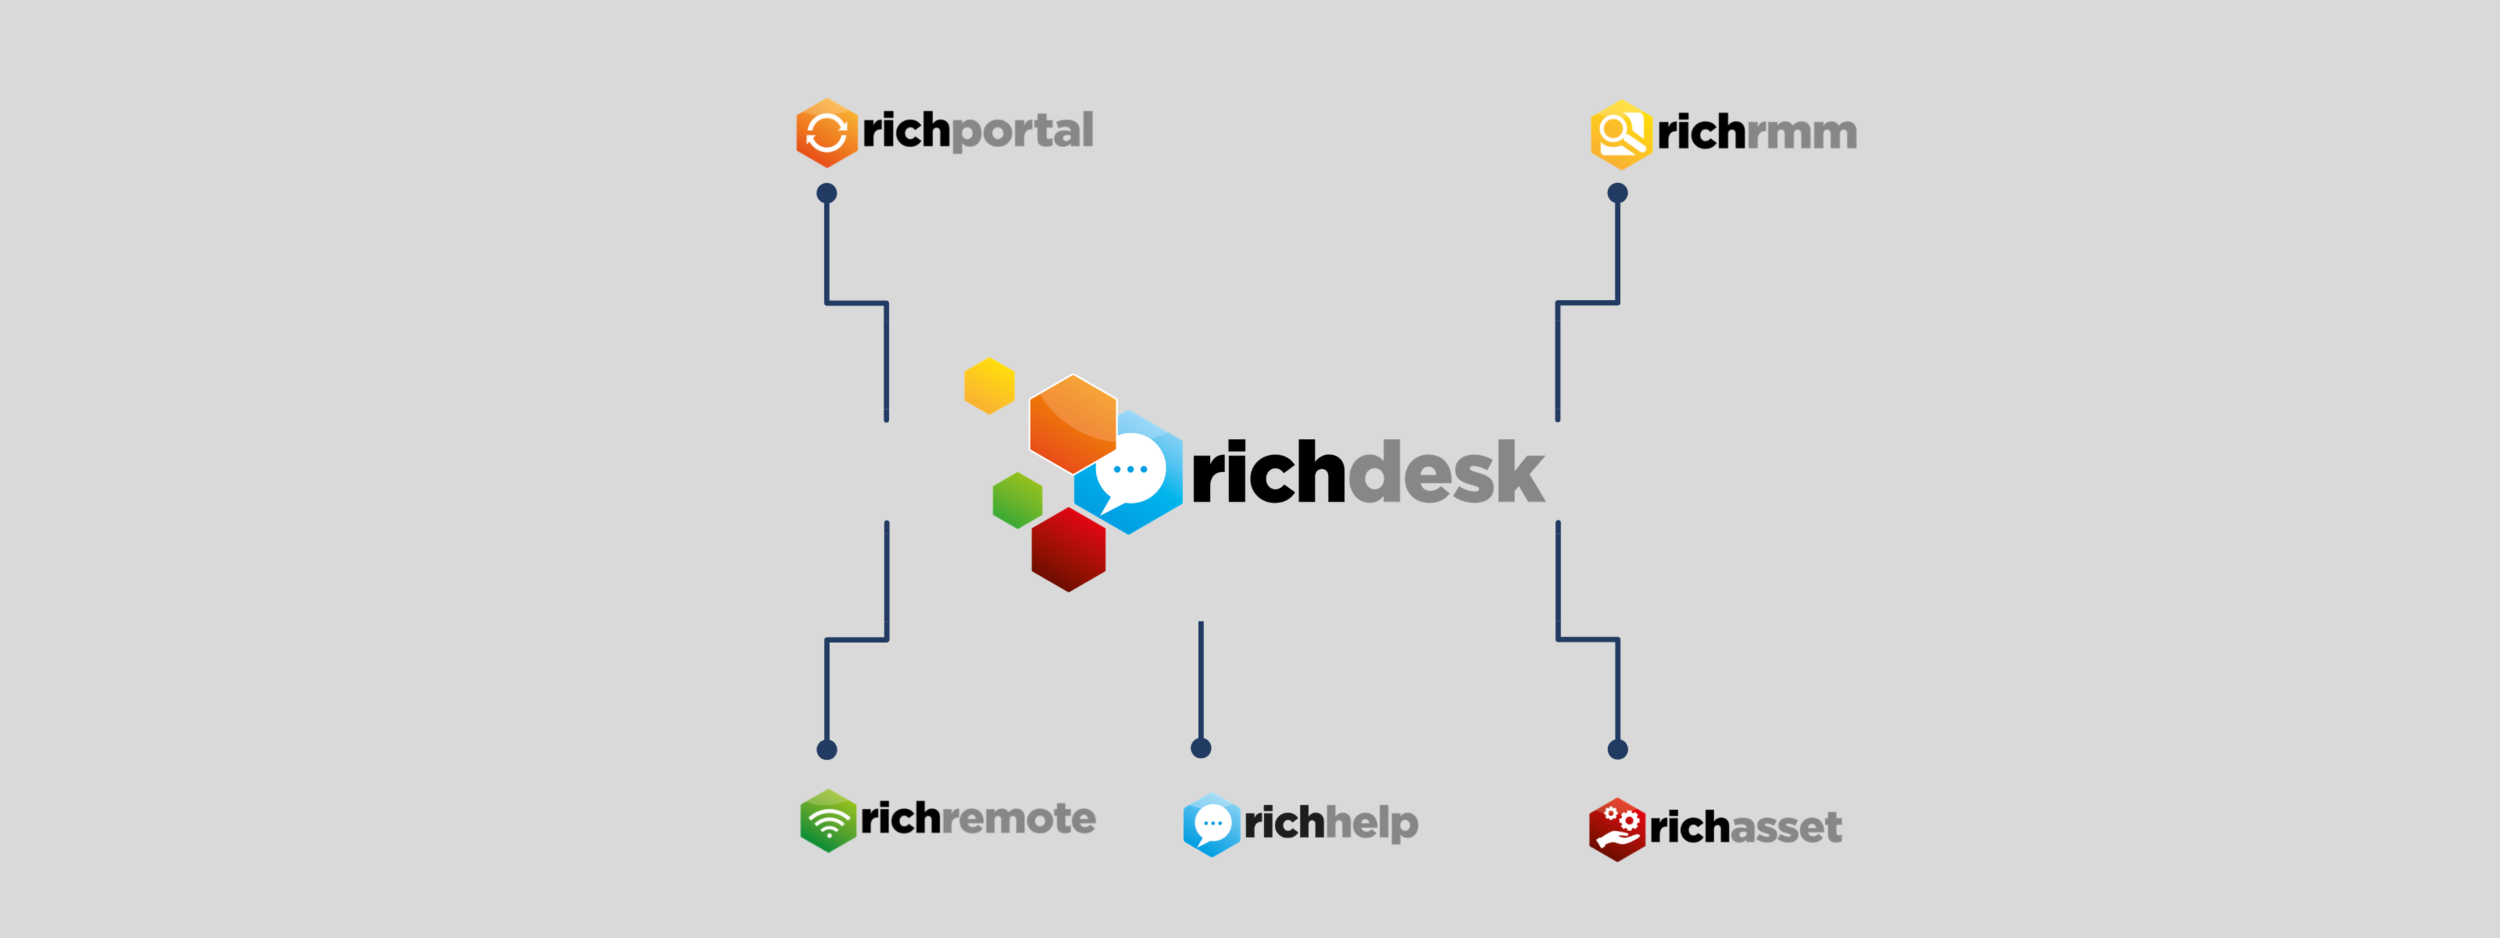 richdesk:   everything IT and customer support teams need to work effectively